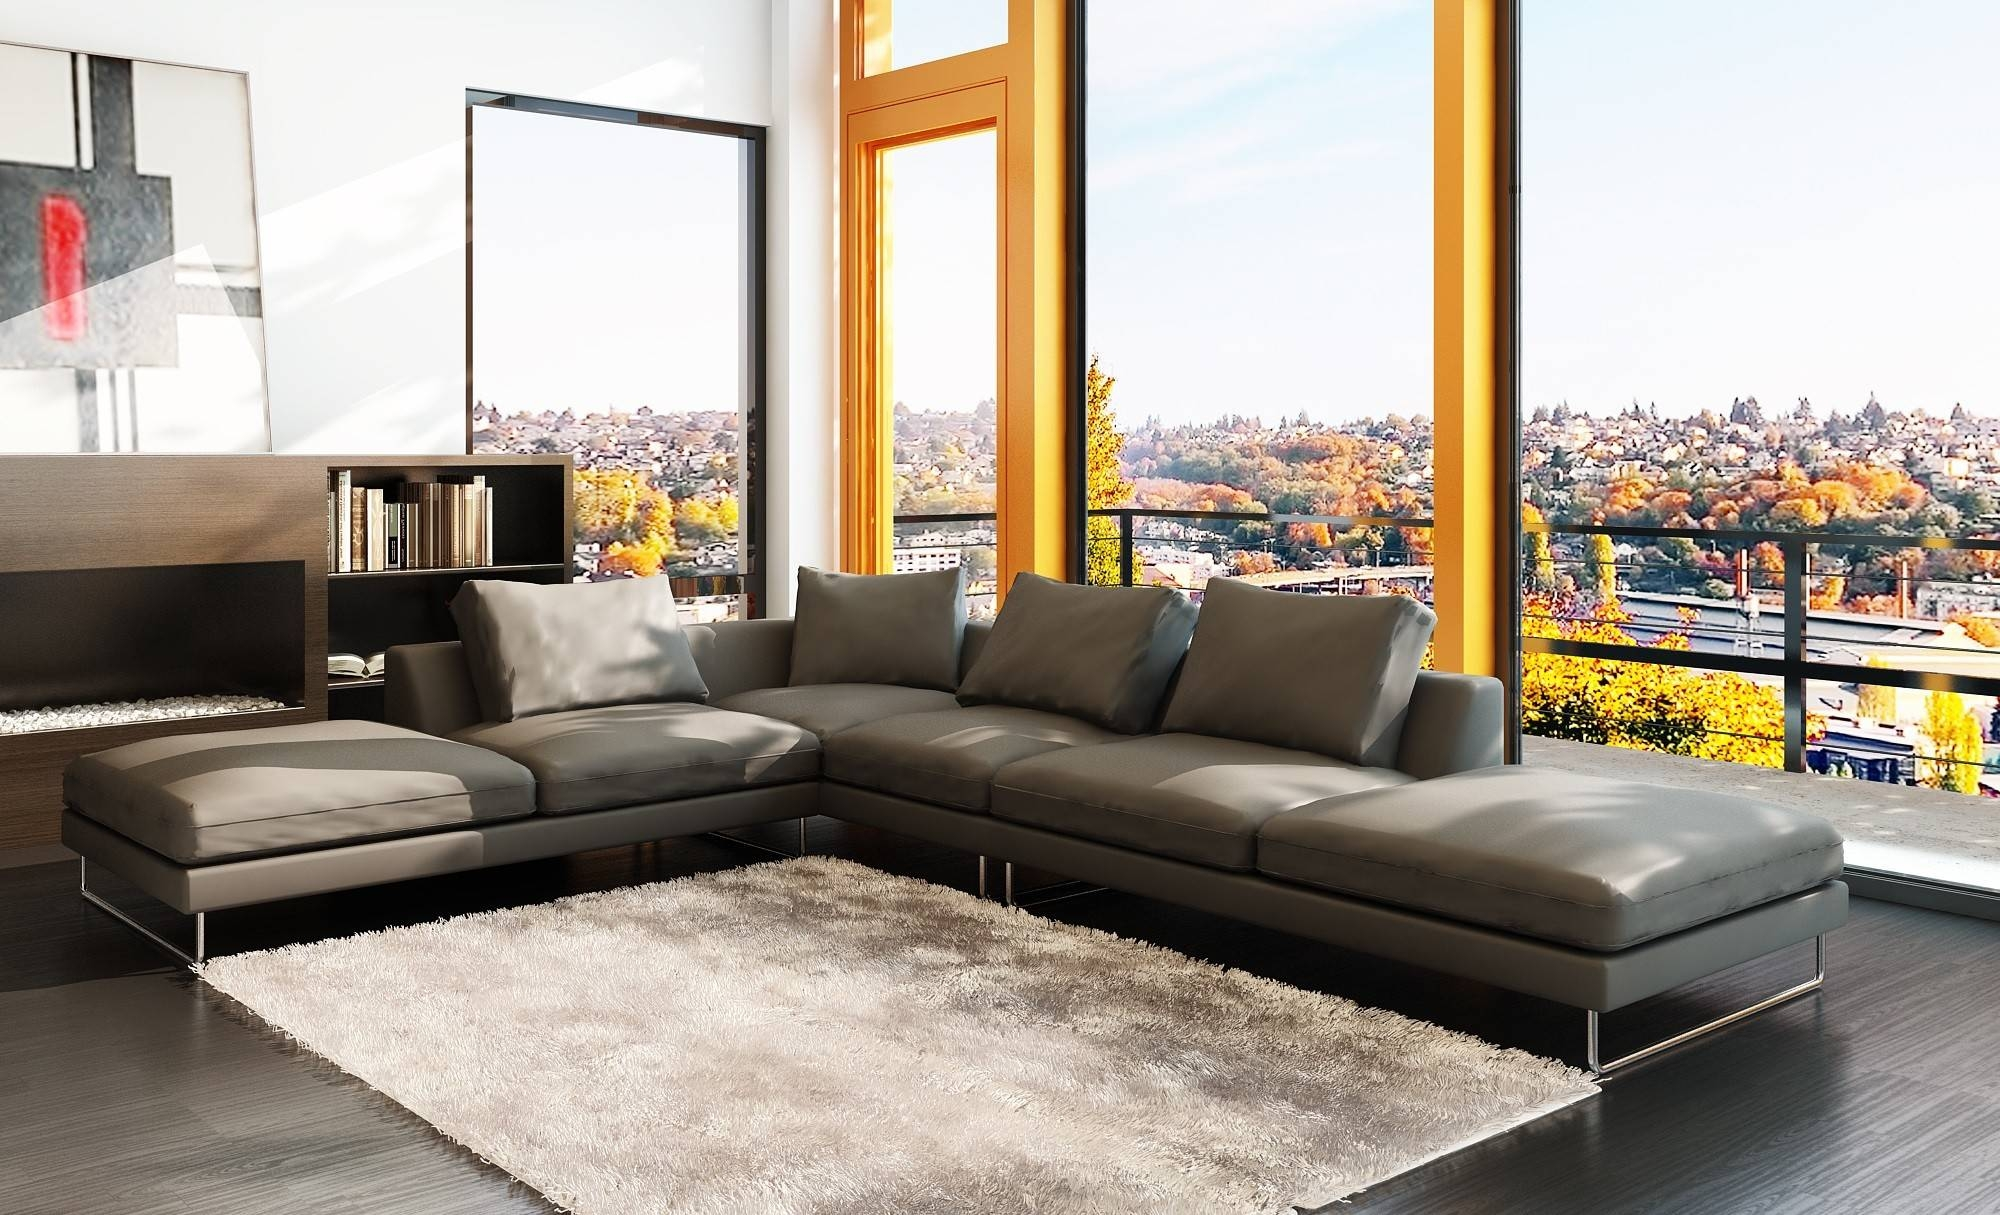 Leather Corner Sofa Grey | Tehranmix Decoration intended for Large Black Leather Corner Sofas (Image 11 of 30)